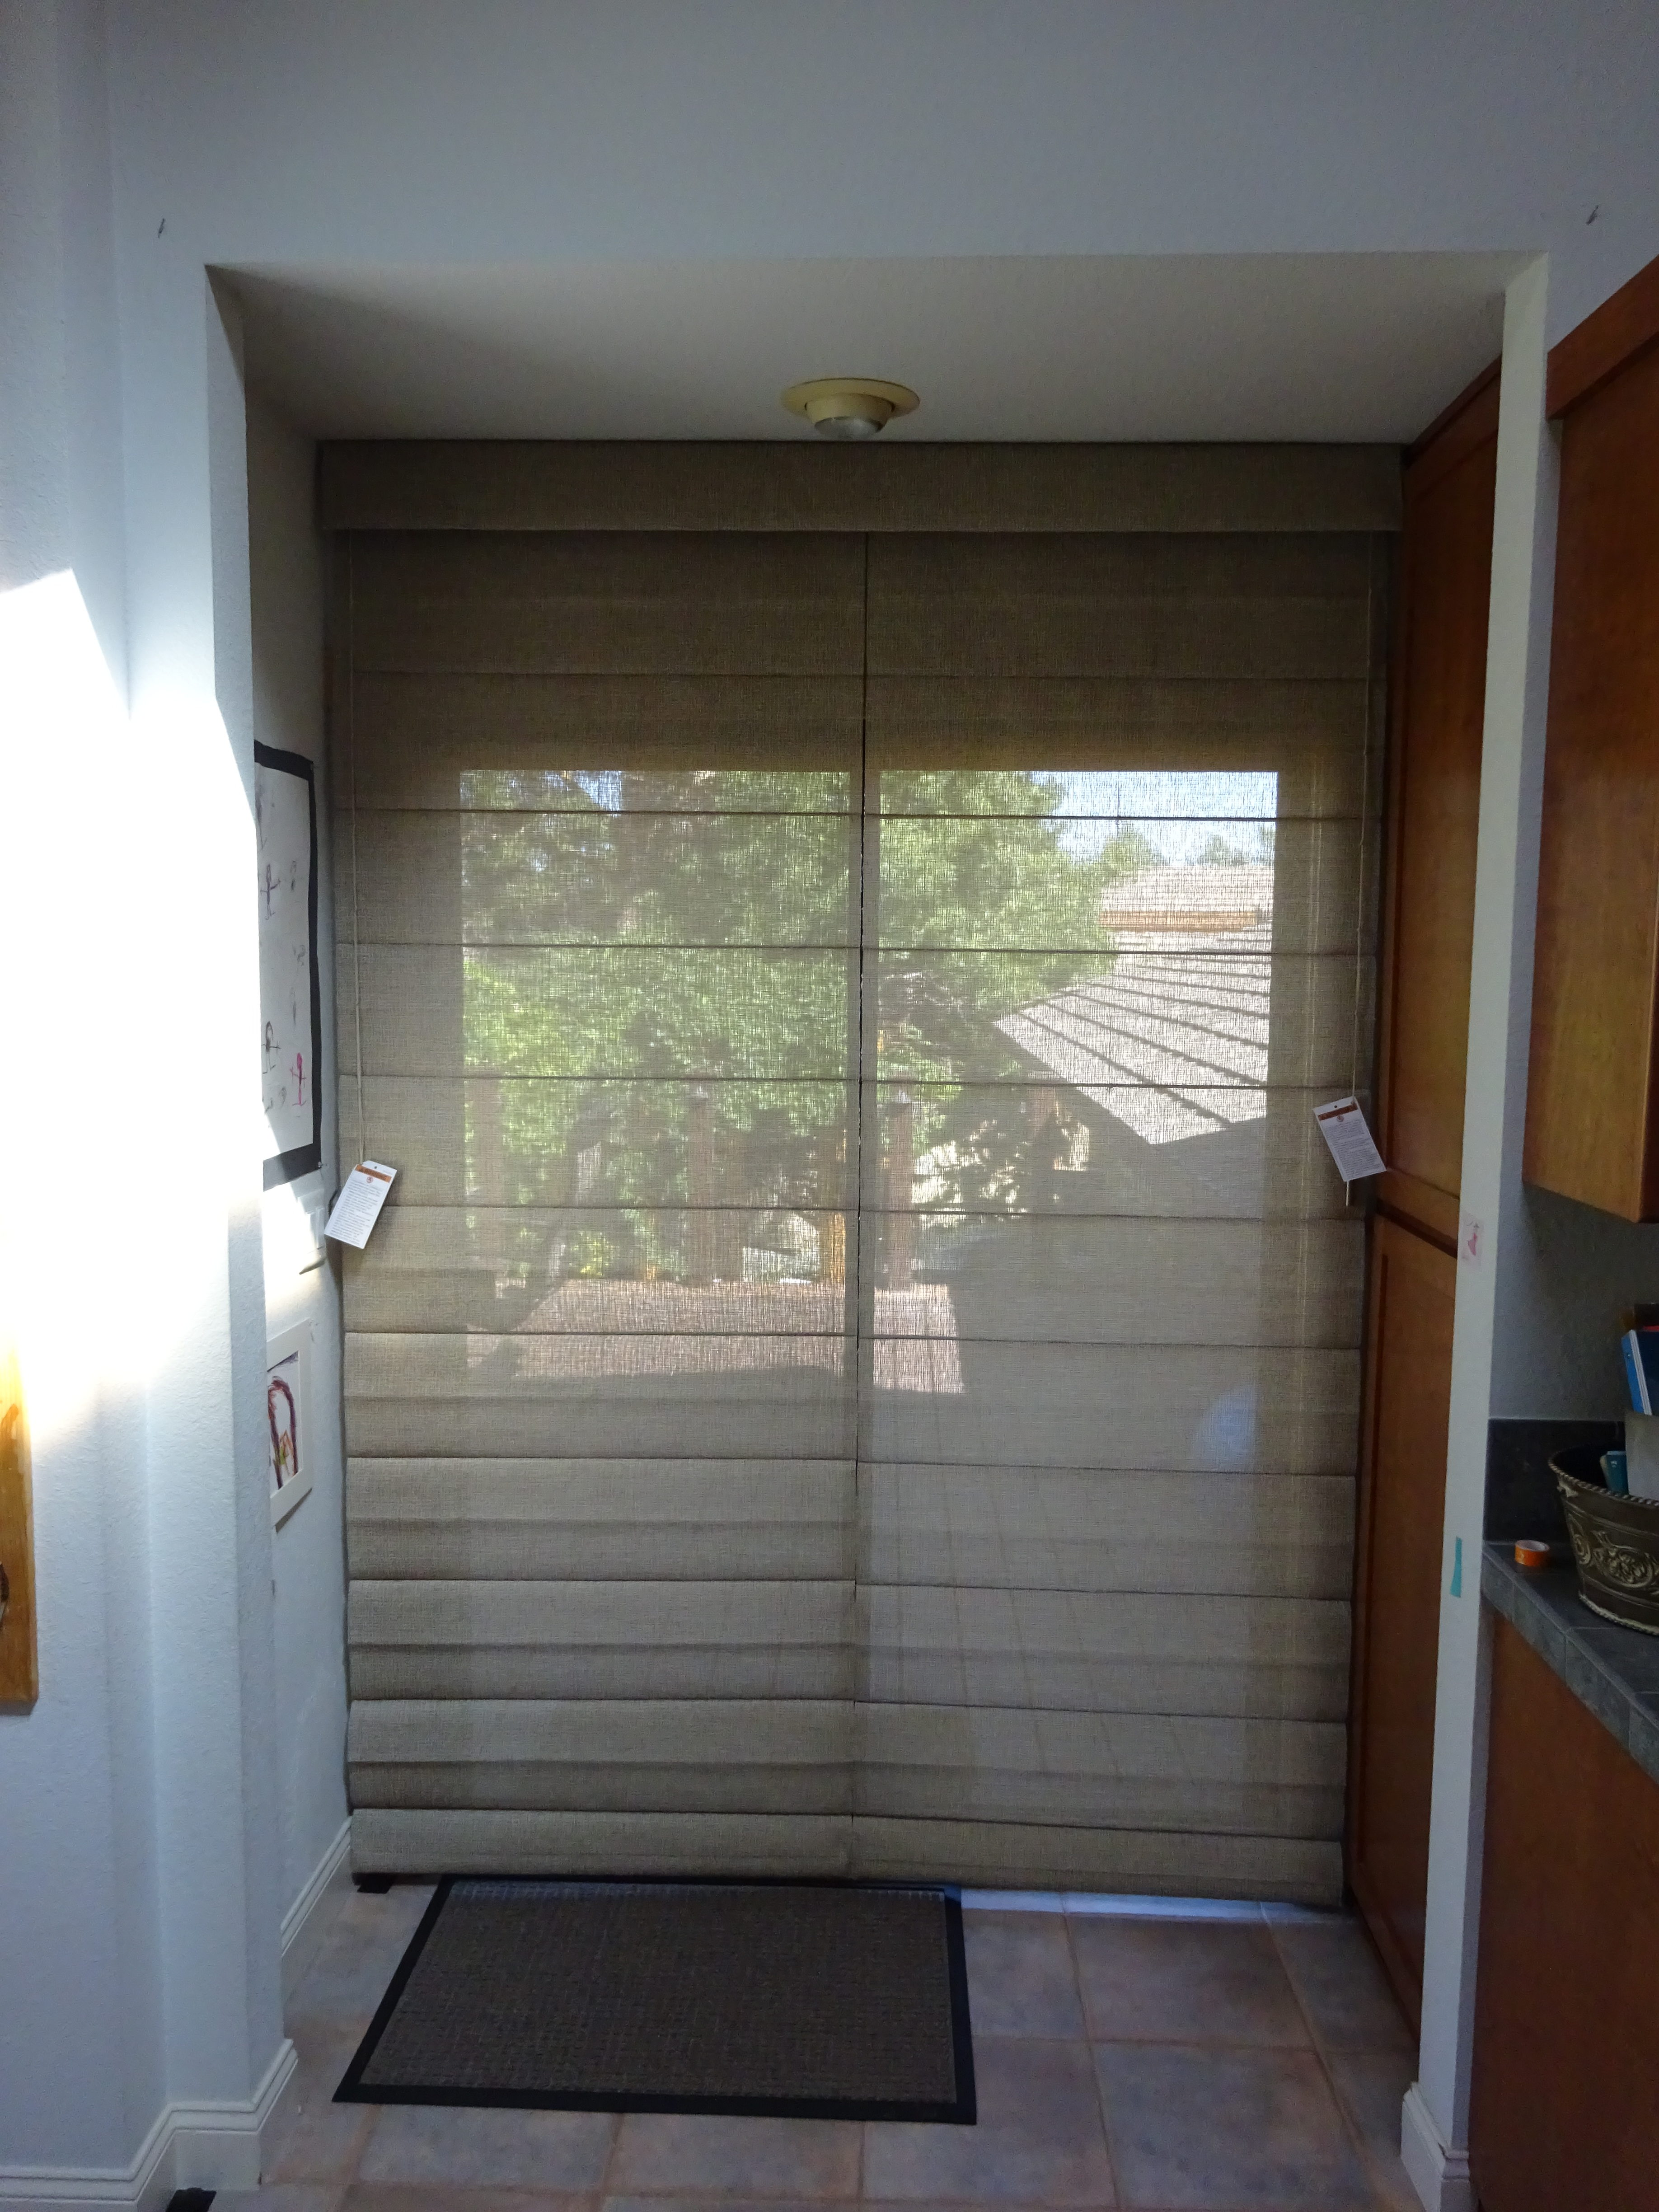 Solar Screen Shades In Roman Shade Style For Reno Homeowner